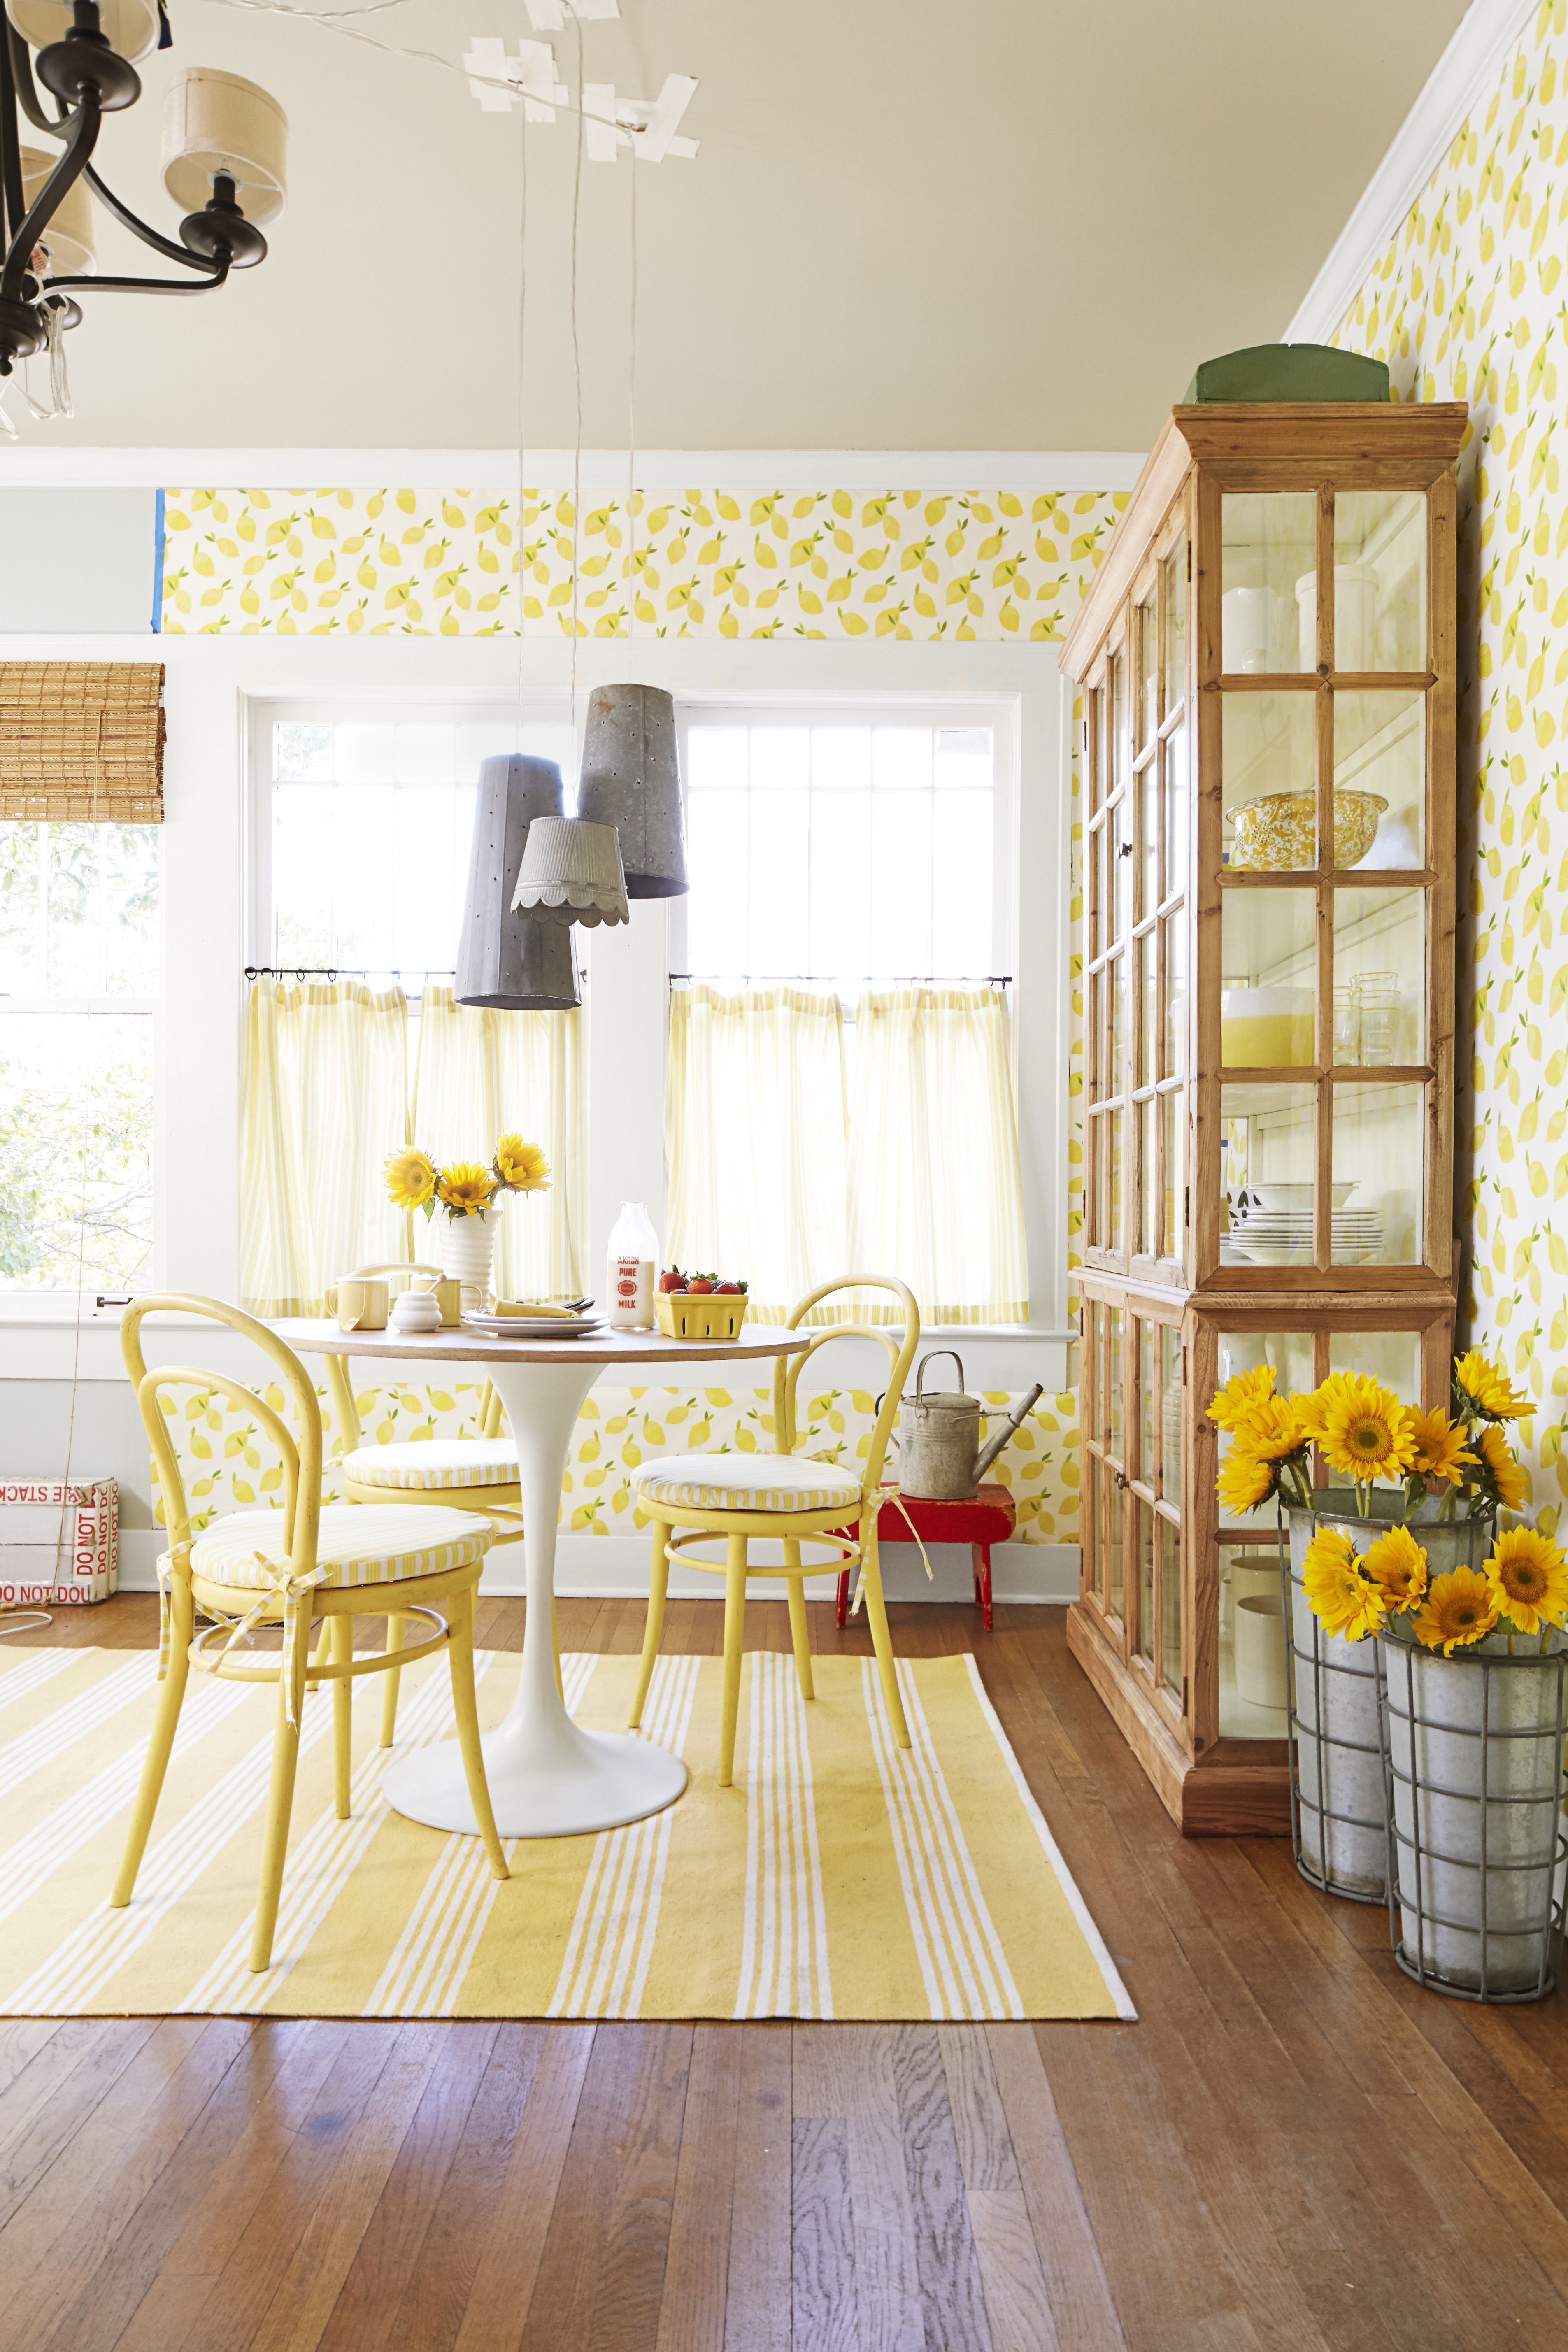 10 Best Kitchen Wallpaper Ideas - How to Decorate Your Kitchen